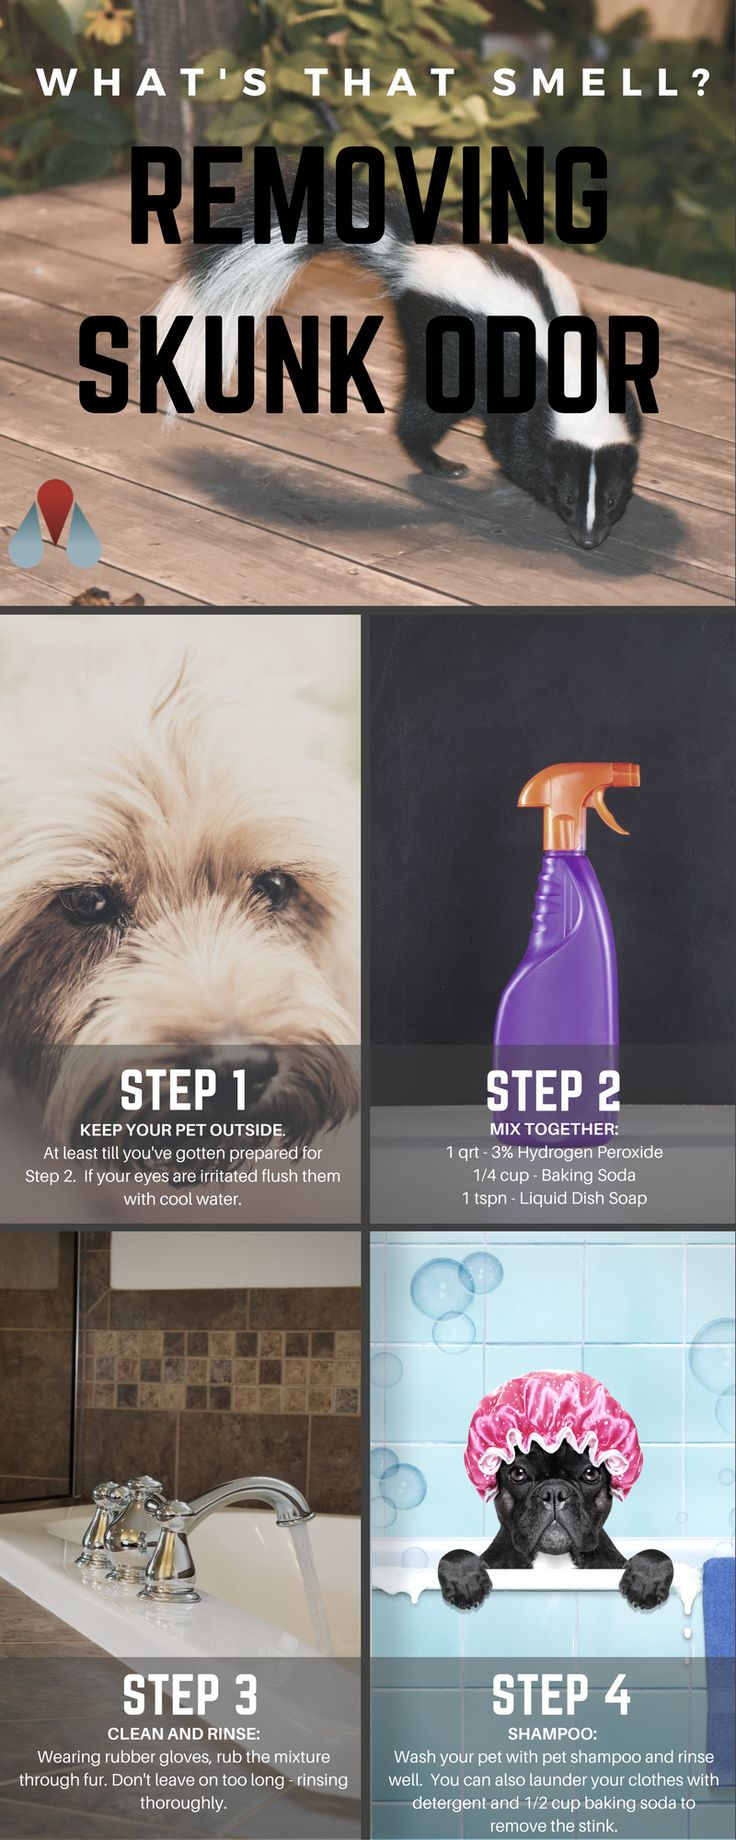 Getting skunk smell out of the house - Get Rid Of That Skunk Smell Quick Easy Skunk Odor Removal